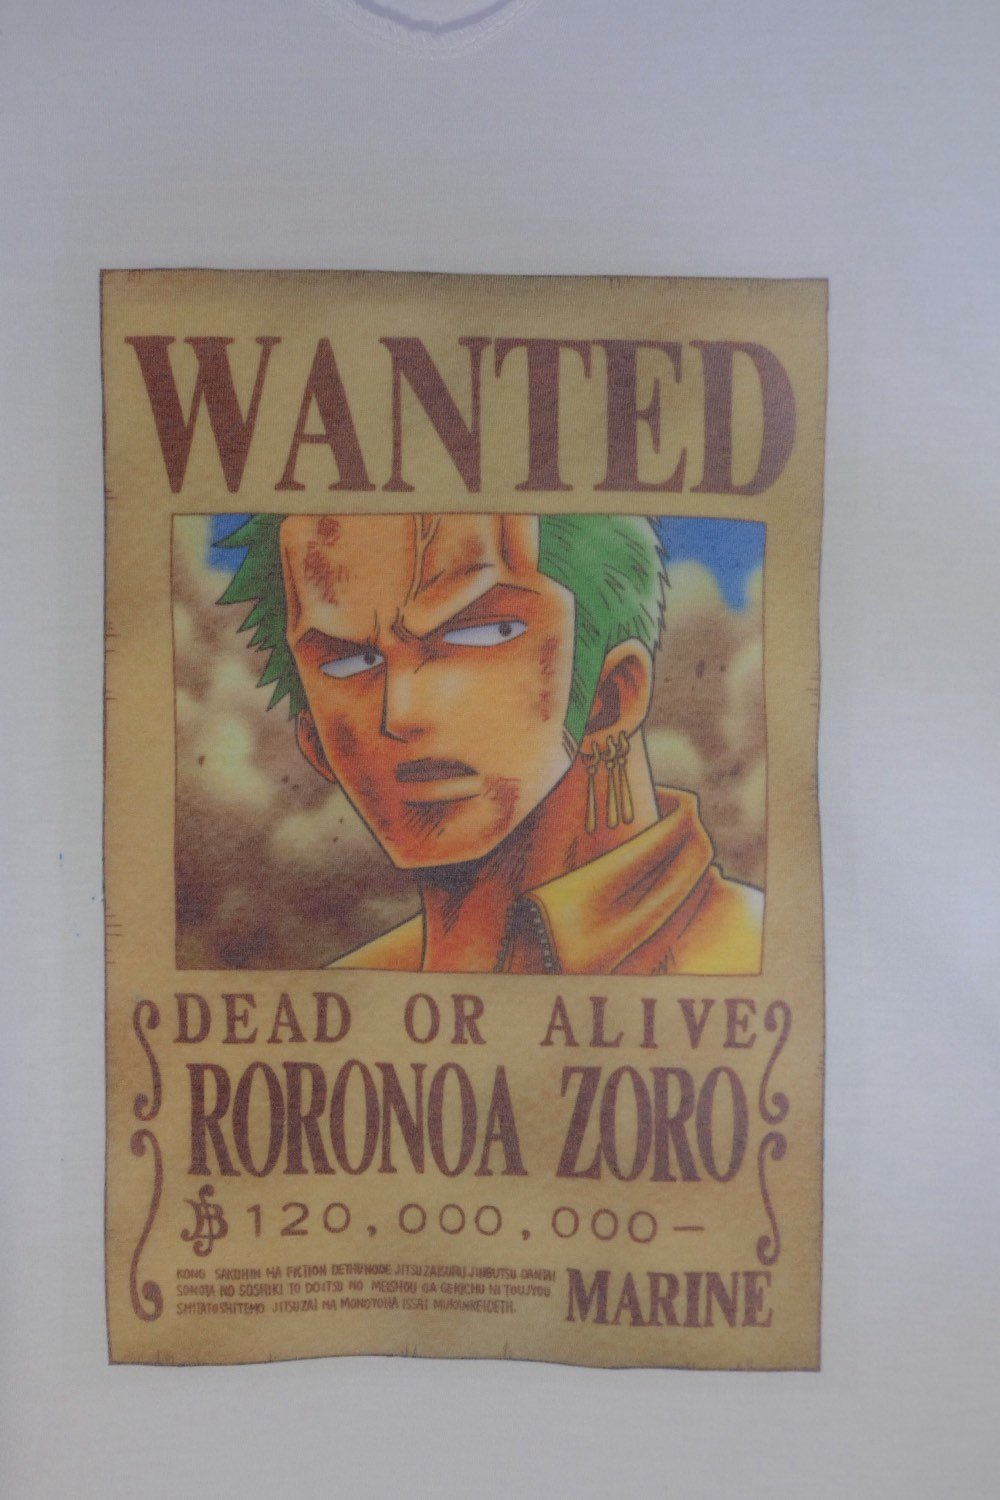 Roronoa Zoro Wanted Poster Awesome Poster Wanted Dead or Alive Roronoa Zoro T Shirt by